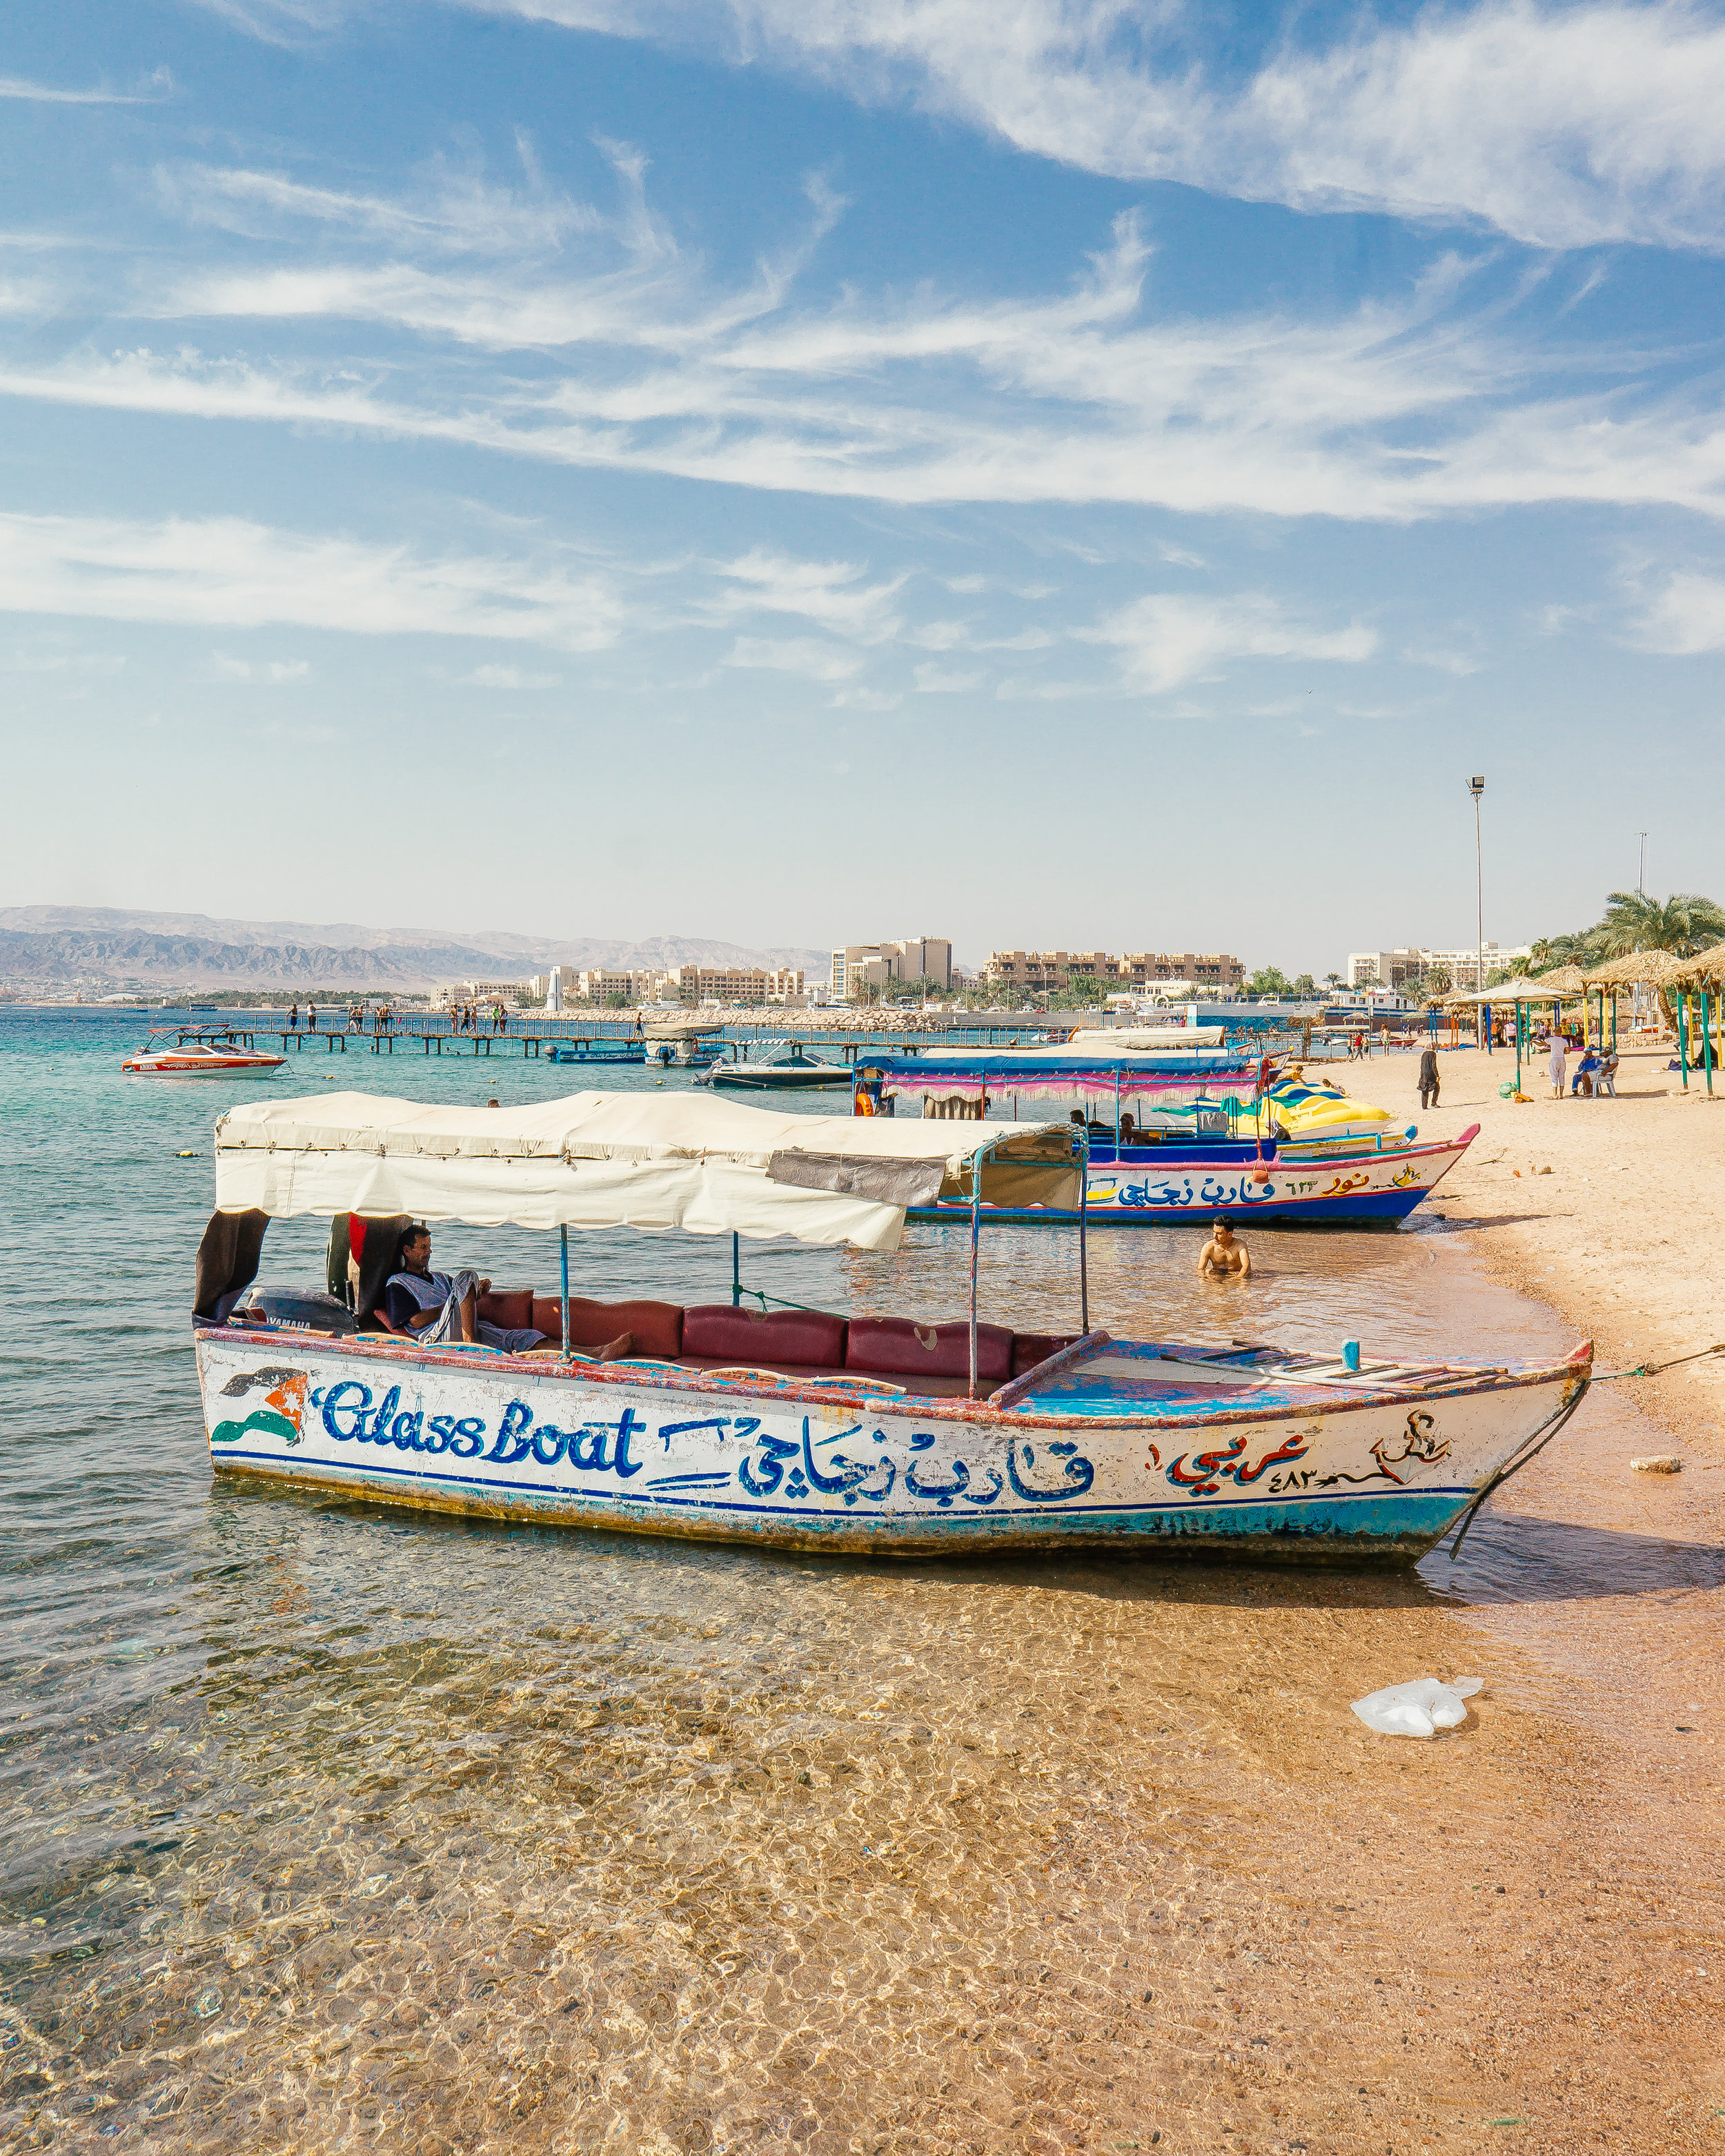 A Day in Aqaba - a tropical oasis on the Red Sea